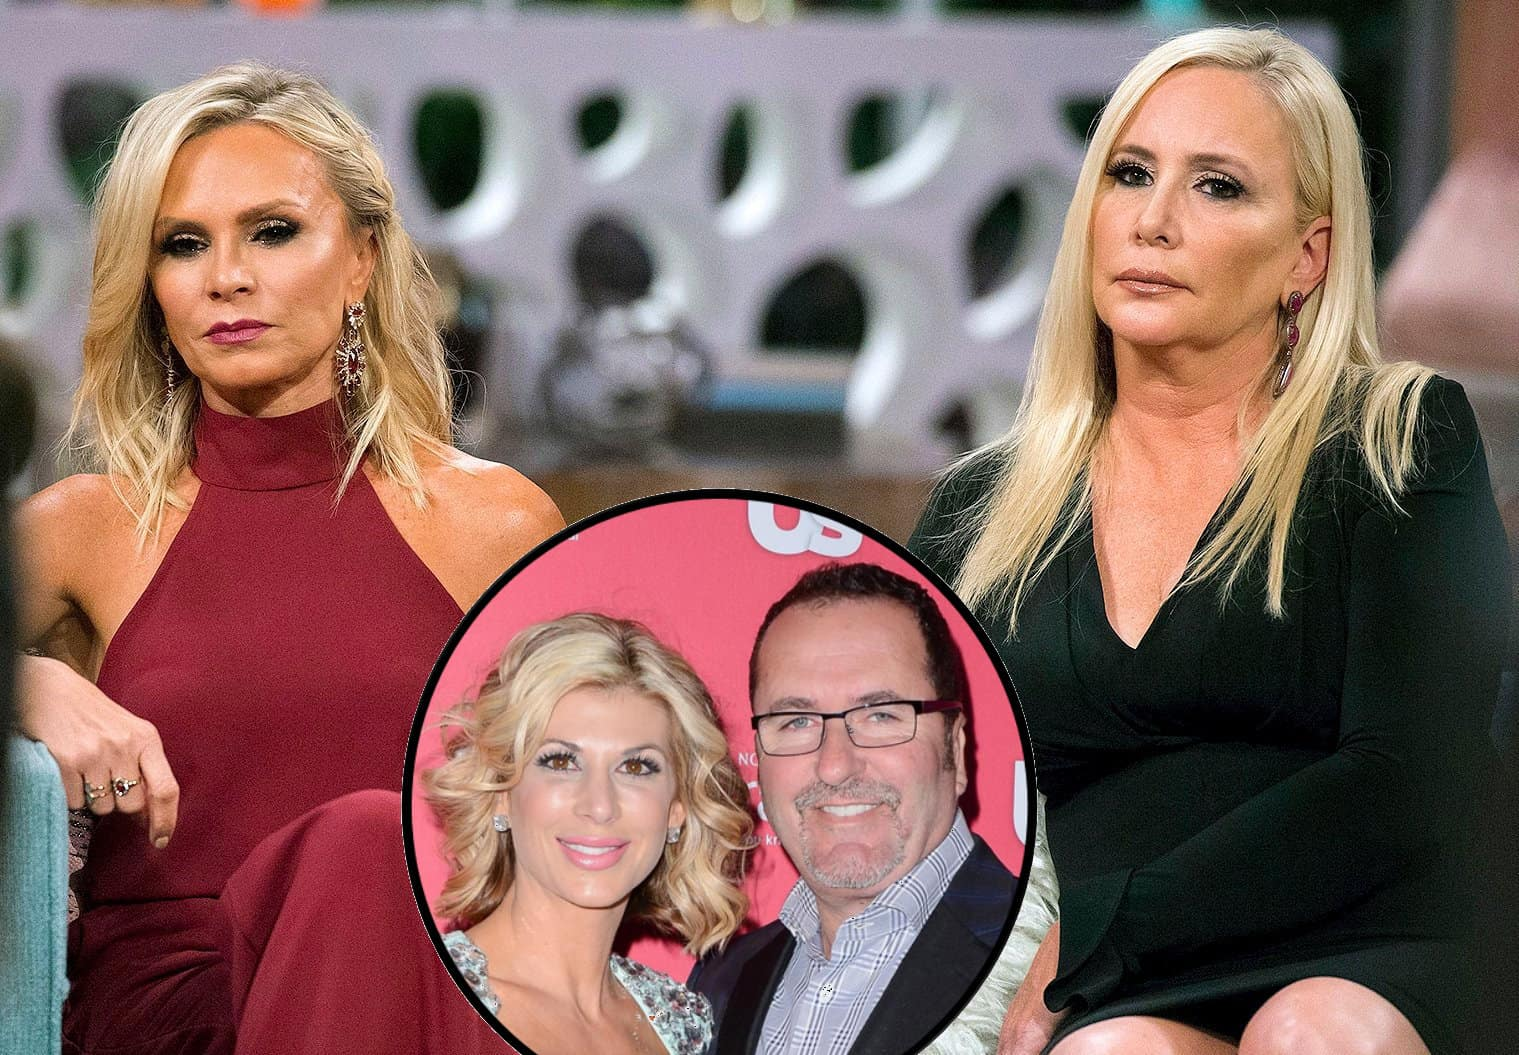 RHOC Tamra Judge and Shannon Beador Jim Bellino lawsuit